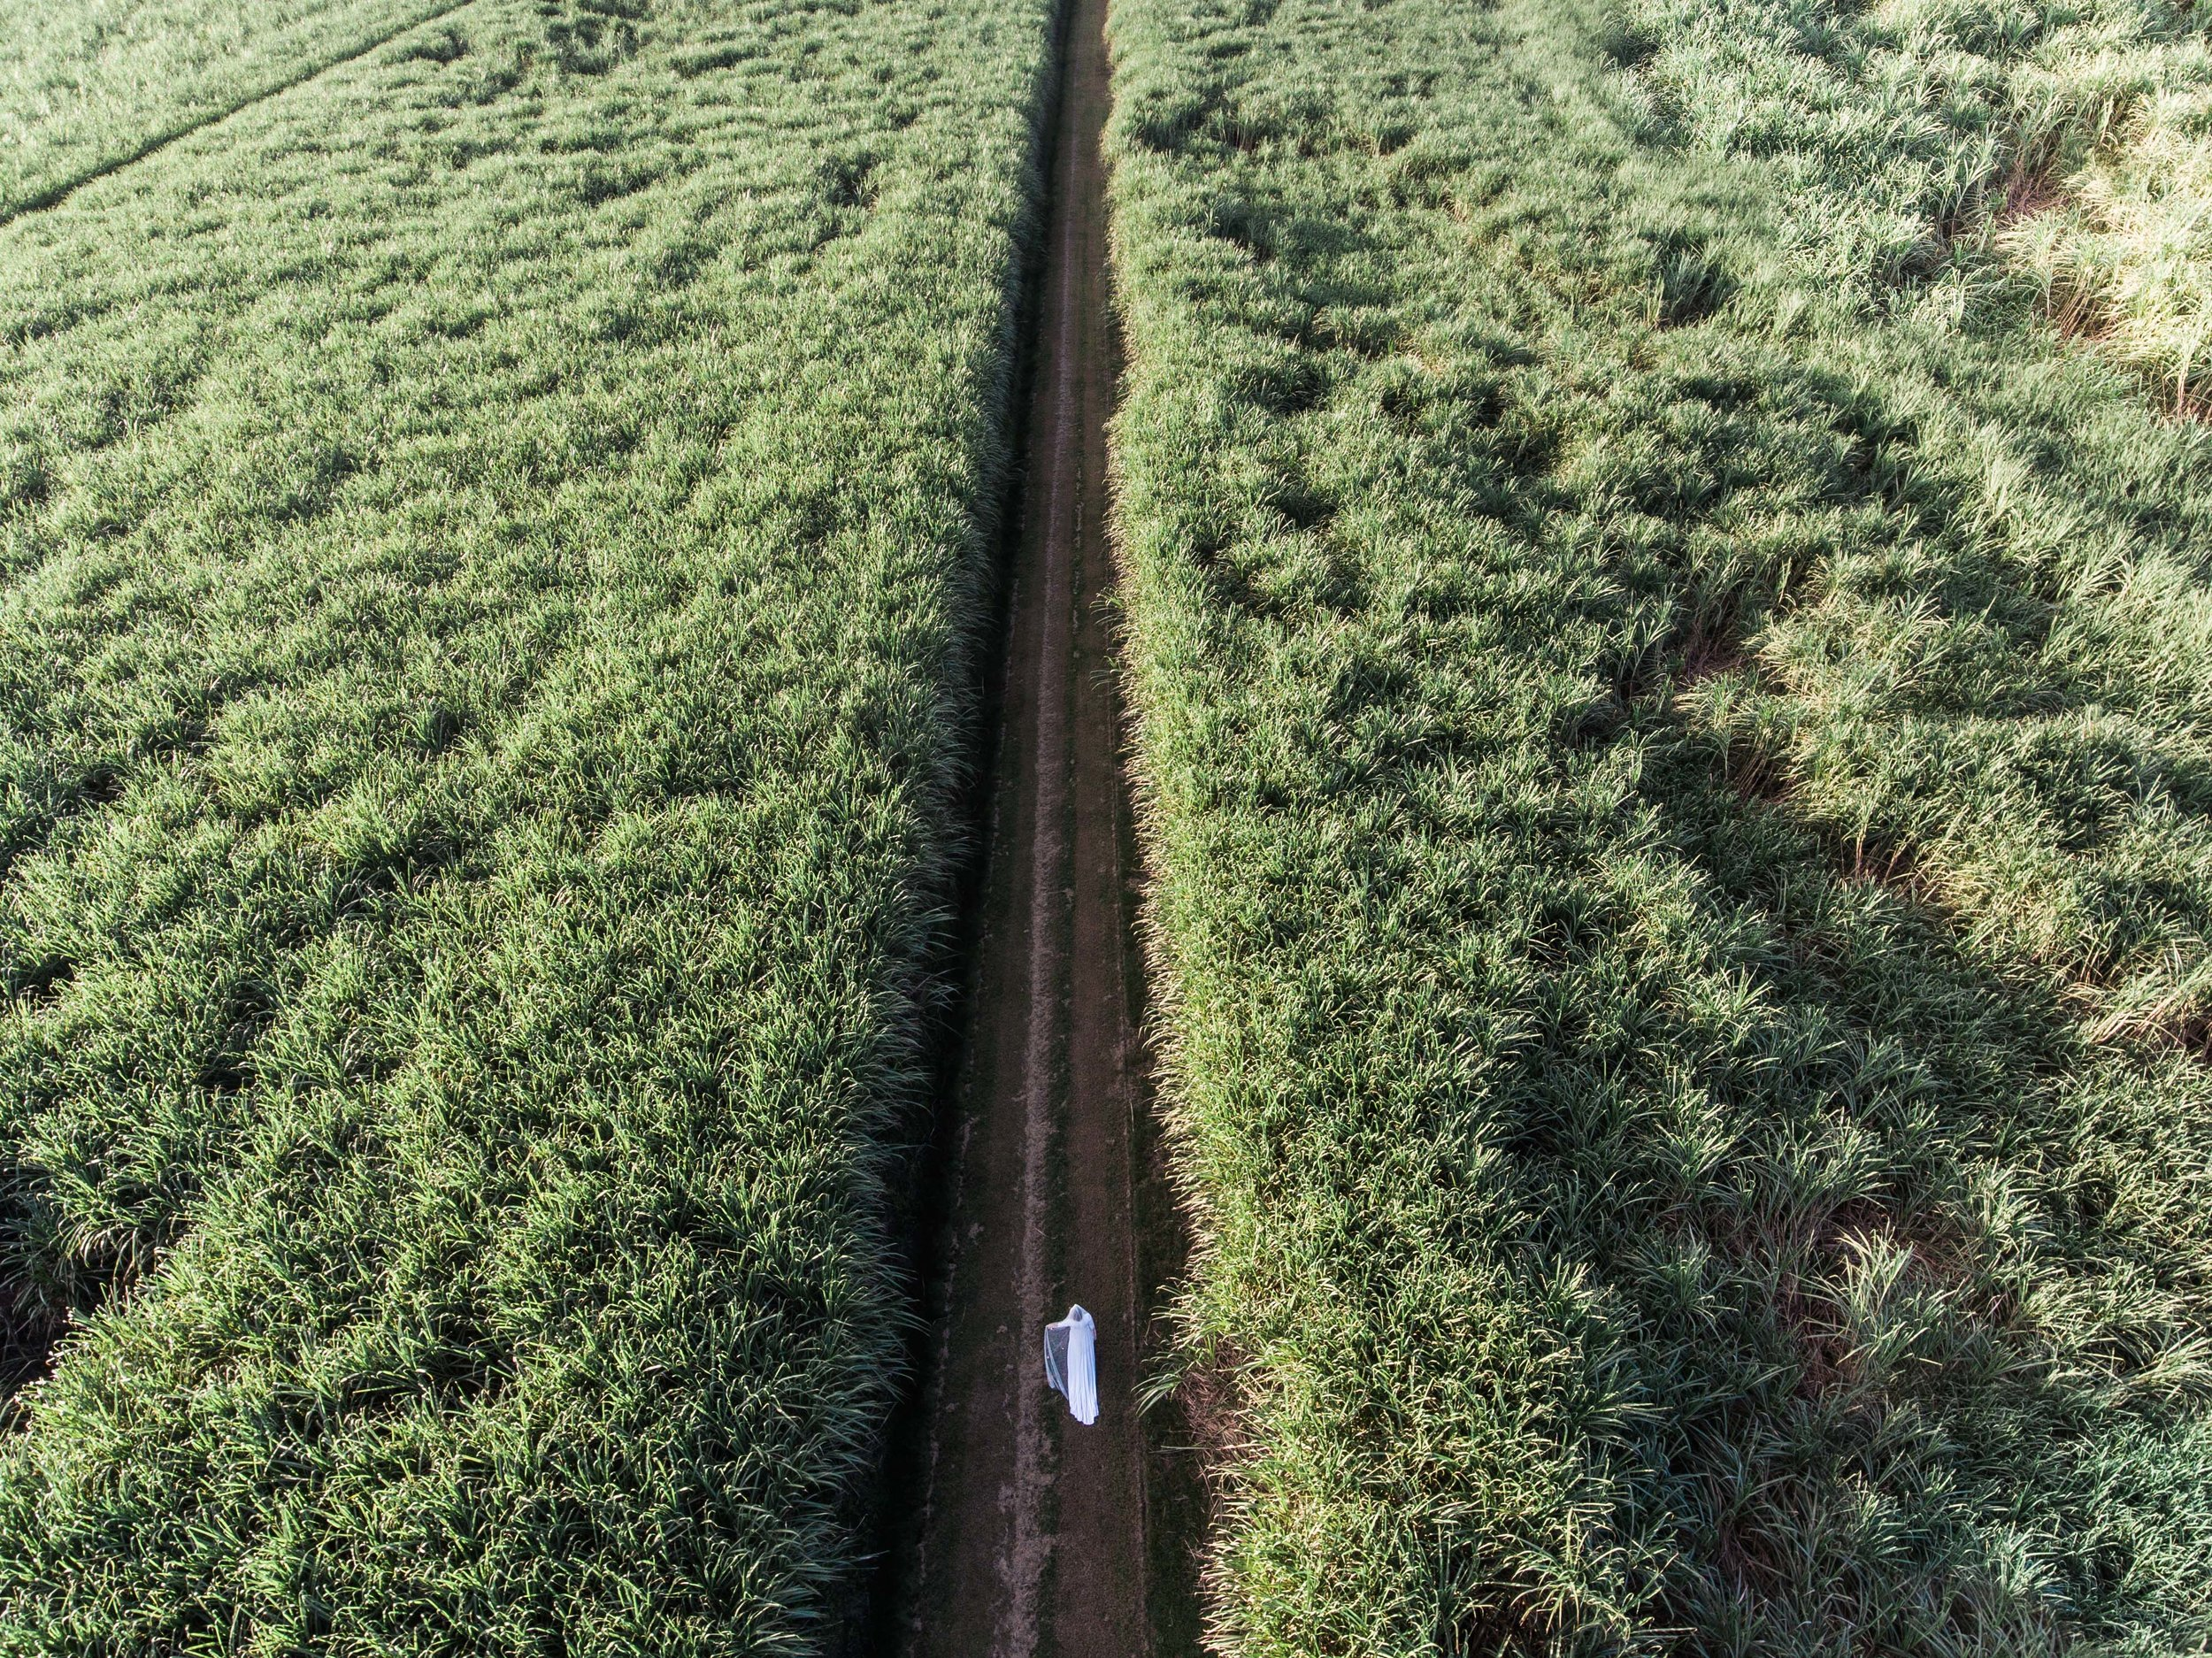 Beautiful Bride Ness walking through  the cane fields - Drone photography